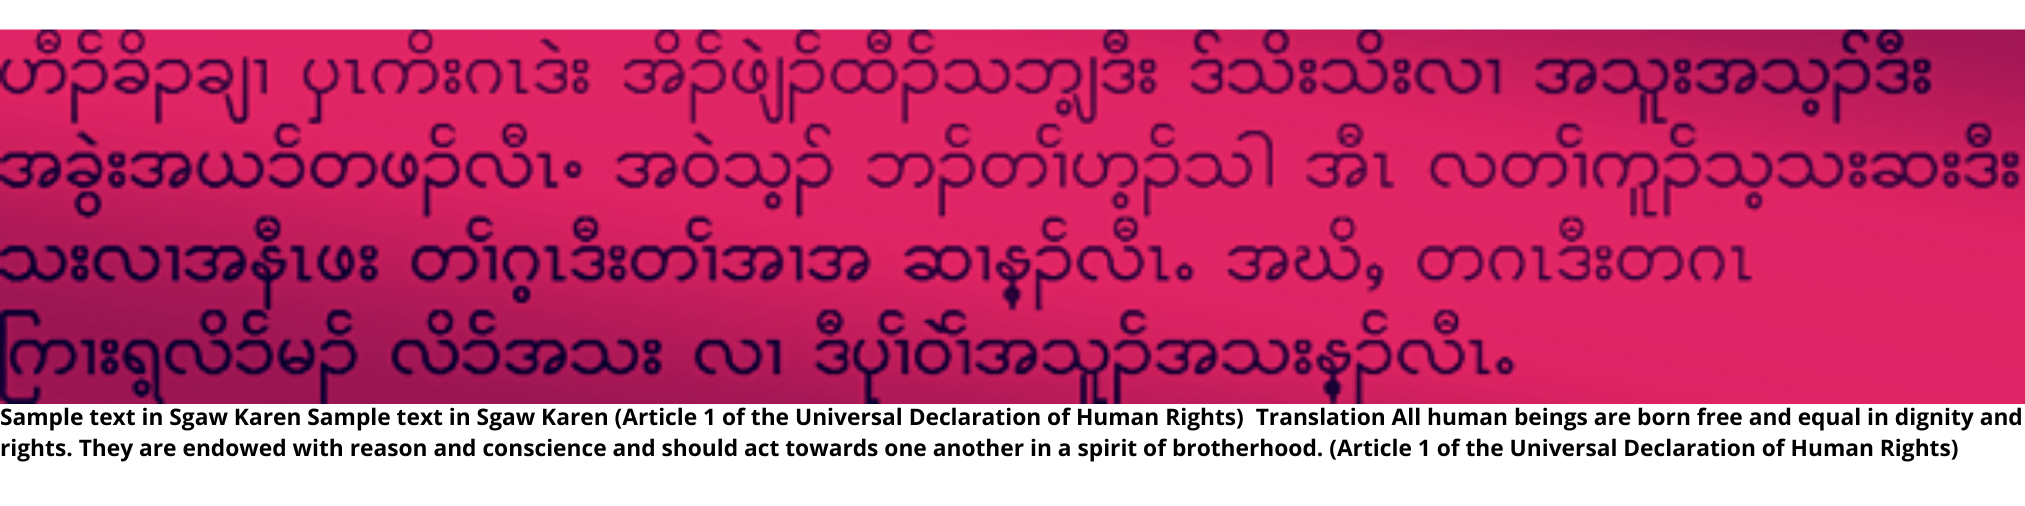 Sample text in Sgaw Karen Sample text in Sgaw Karen (Article 1 of the Universal Declaration of Human Rights)